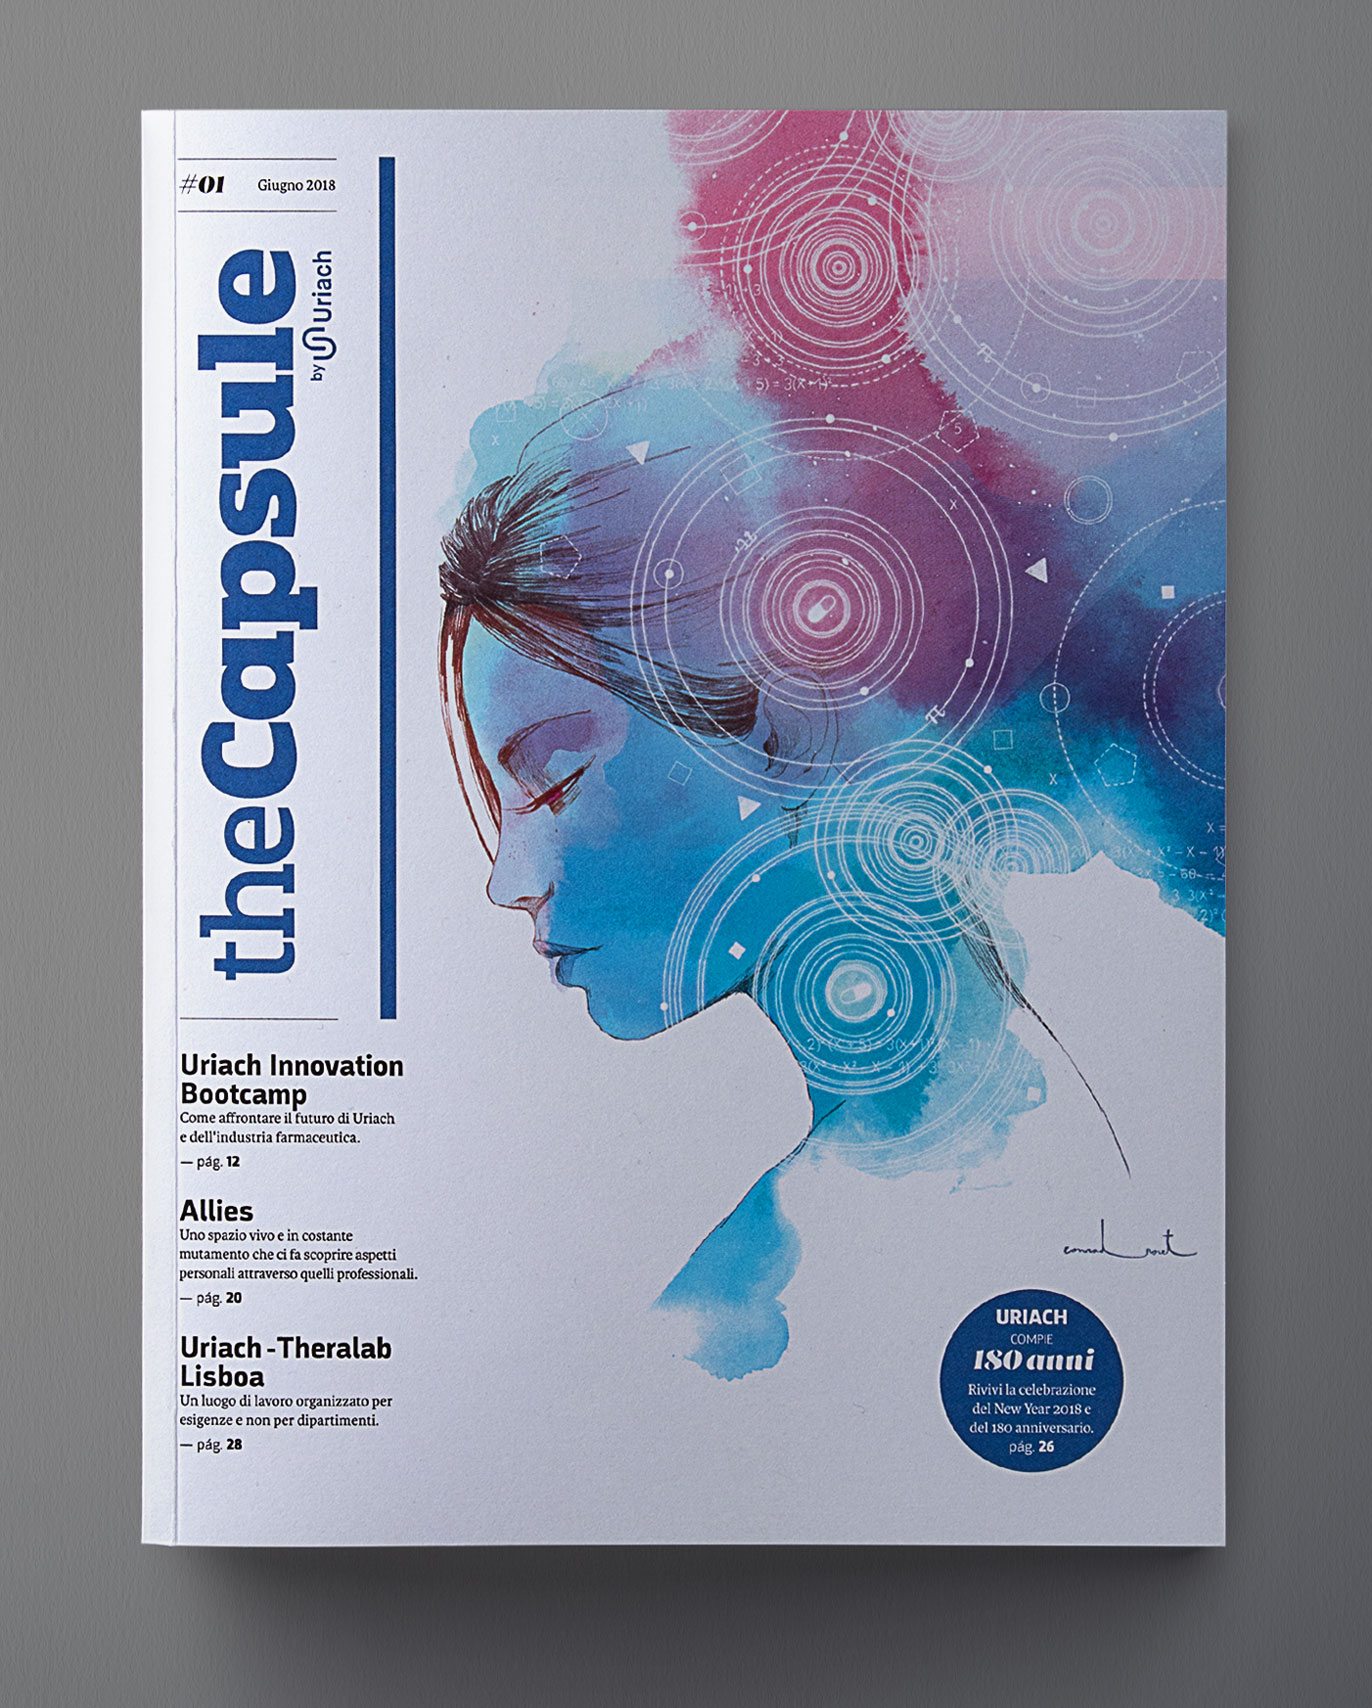 Uriach editorial design the capsule corporate magazine pharmaceutical laboratory graphic design art direction conrad roset Vibranding